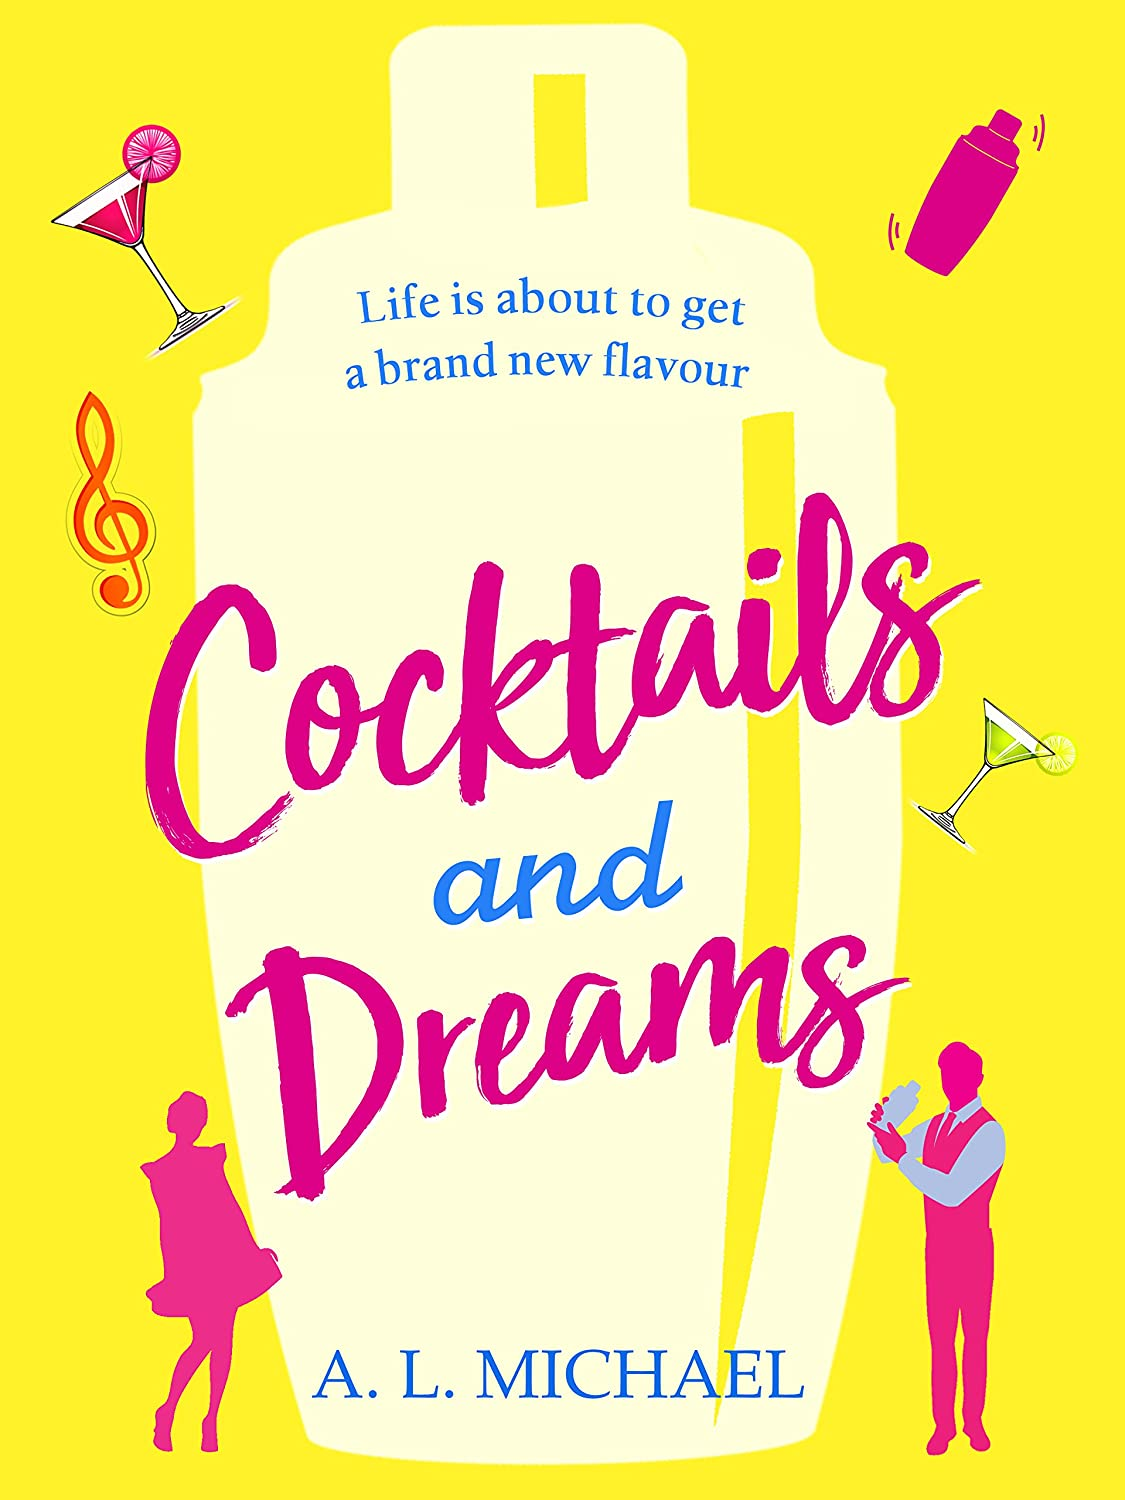 Cocktails and Dreams by A.L. Michael